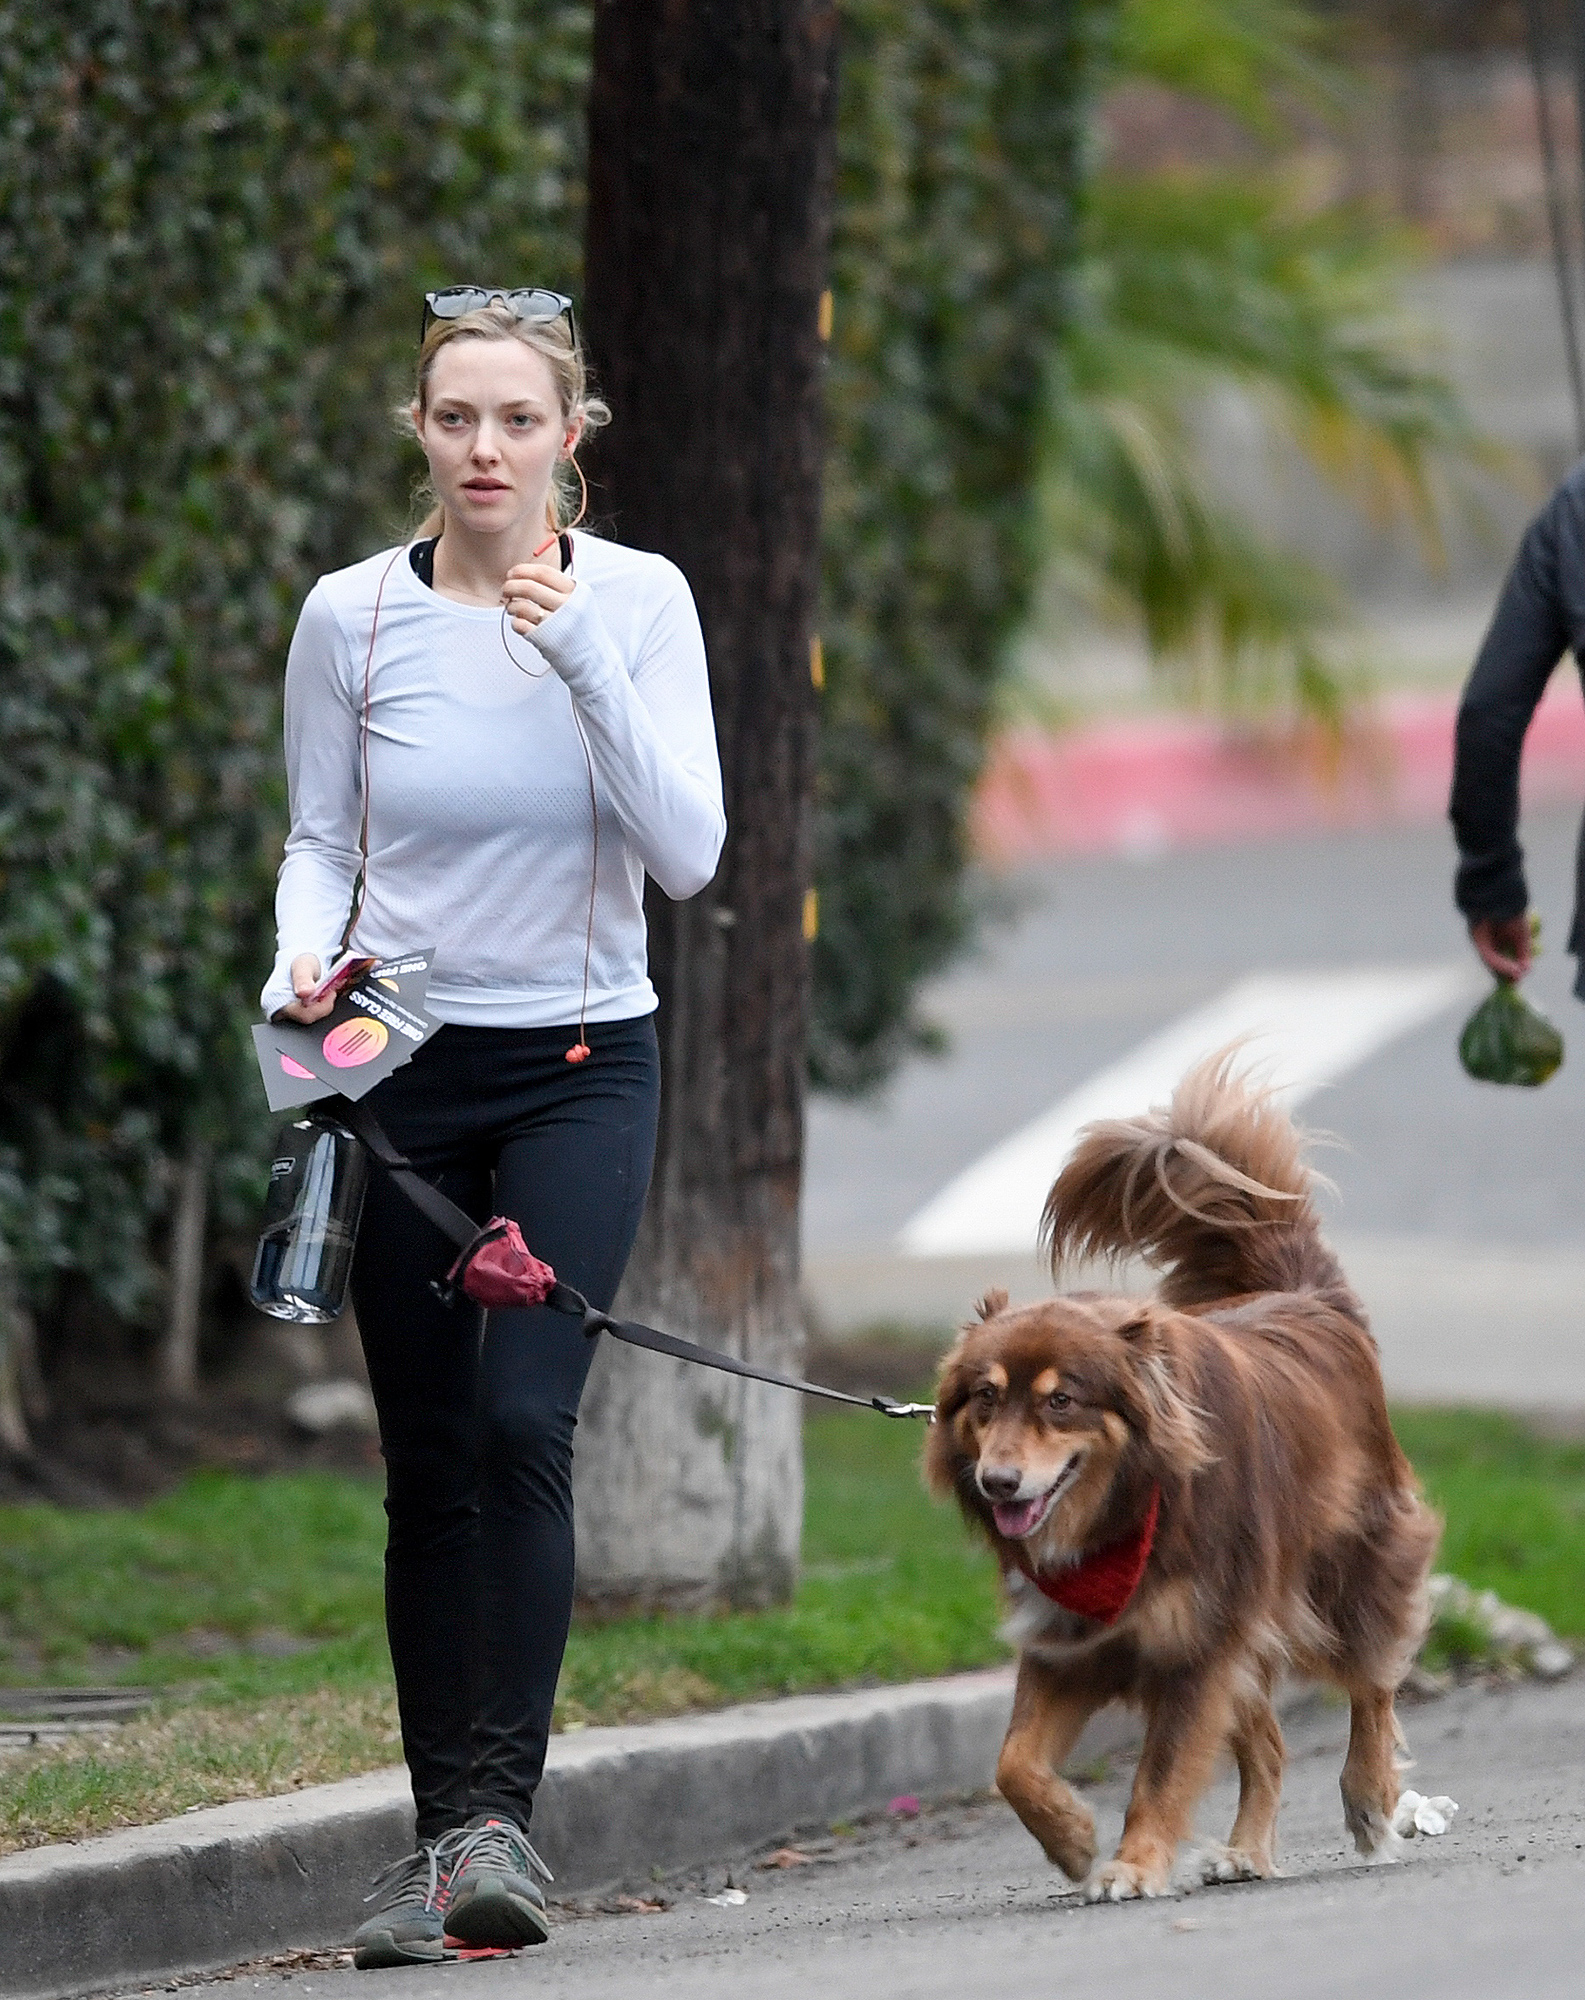 EXCLUSIVE: Amanda Seyfried takes her dog for a walk